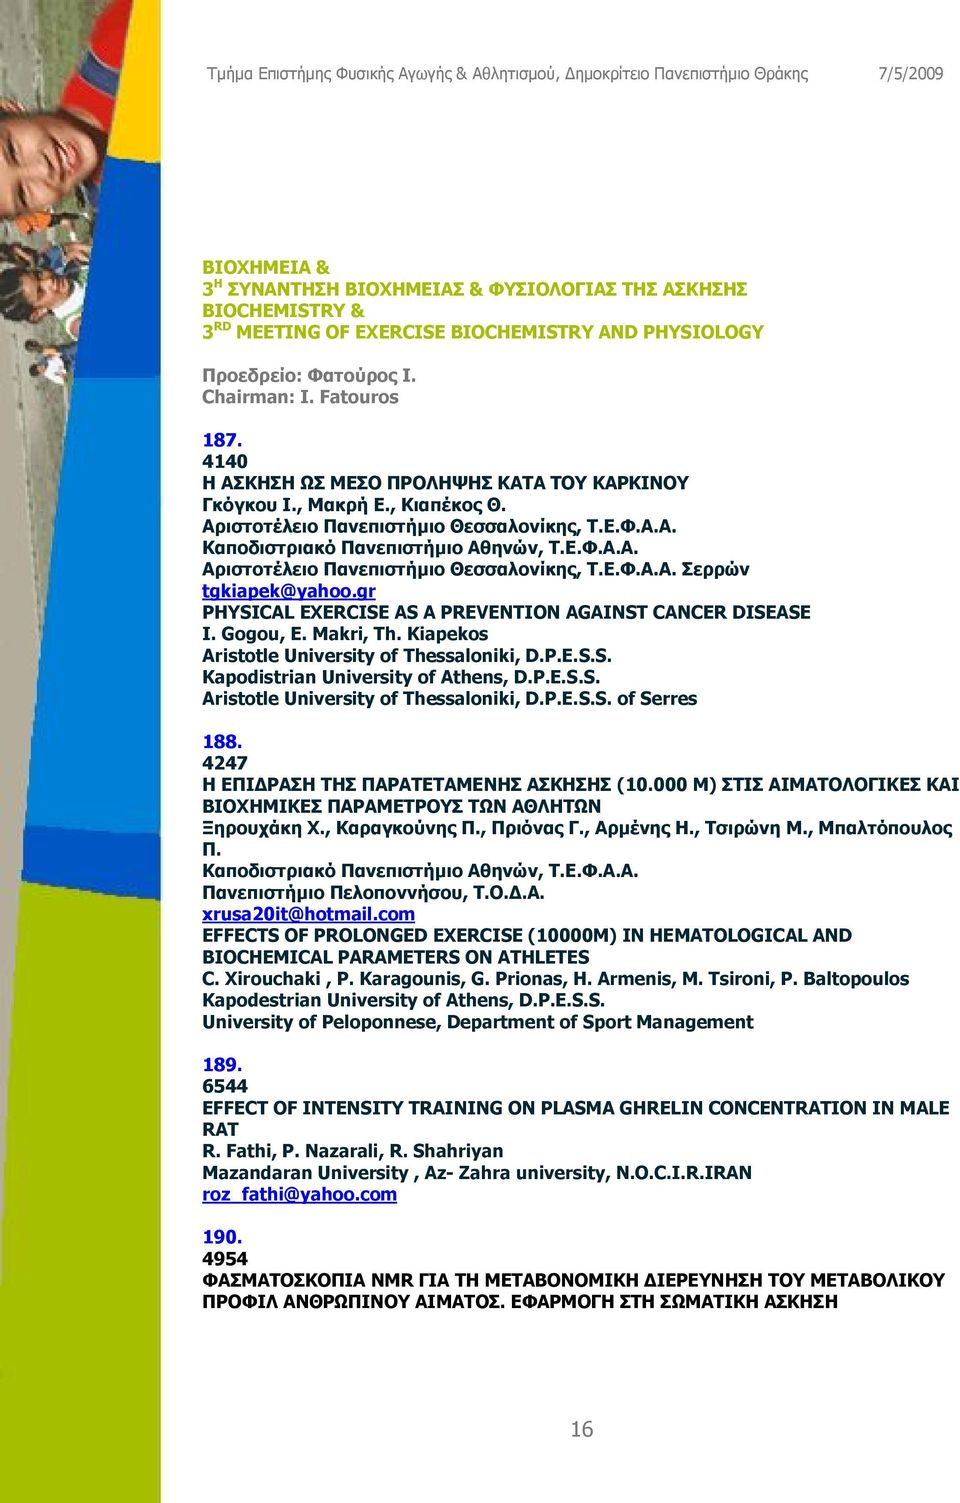 gr PHYSICAL EXERCISE AS A PREVENTION AGAINST CANCER DISEASE I. Gogou, E. Makri, Th. Kiapekos Aristotle University of Thessaloniki, D.P.E.S.S. Kapodistrian University of Athens, D.P.E.S.S. Aristotle University of Thessaloniki, D.P.E.S.S. of Serres 188.